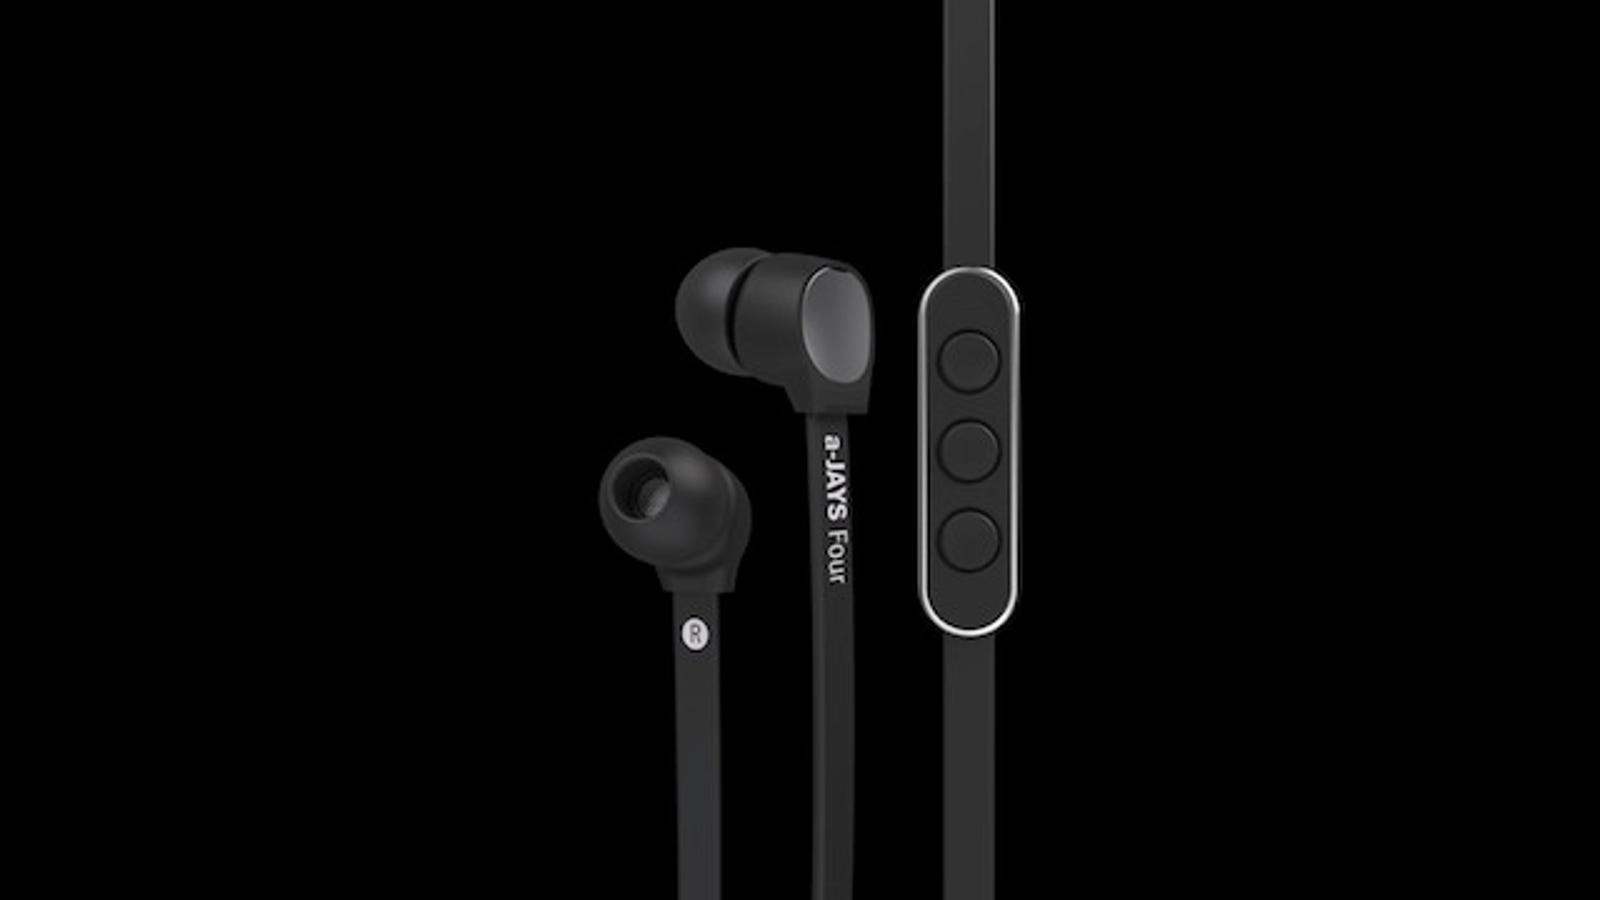 Flat earbuds for sleeping - rose gold earbuds for iphone